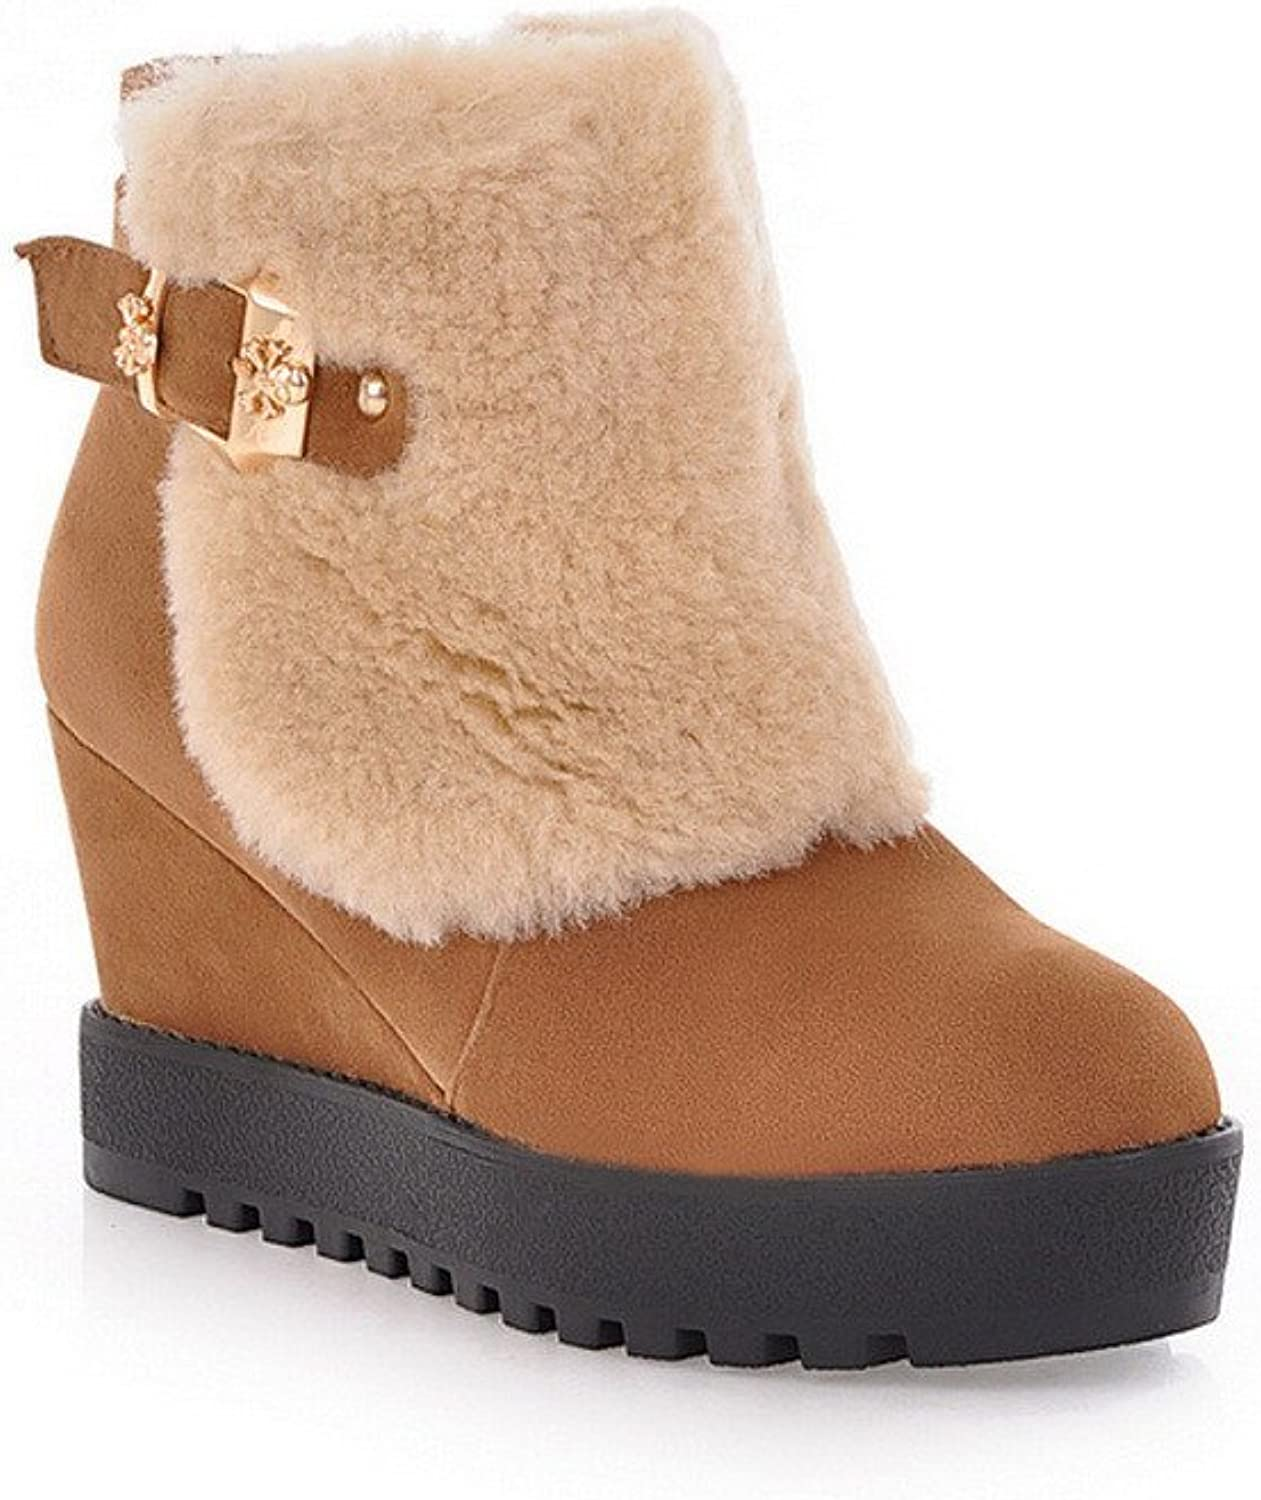 WeenFashion Women's Frosting Wool Lining Wedge colorant Match Ankle Snow Boots with Metal Buckles, True